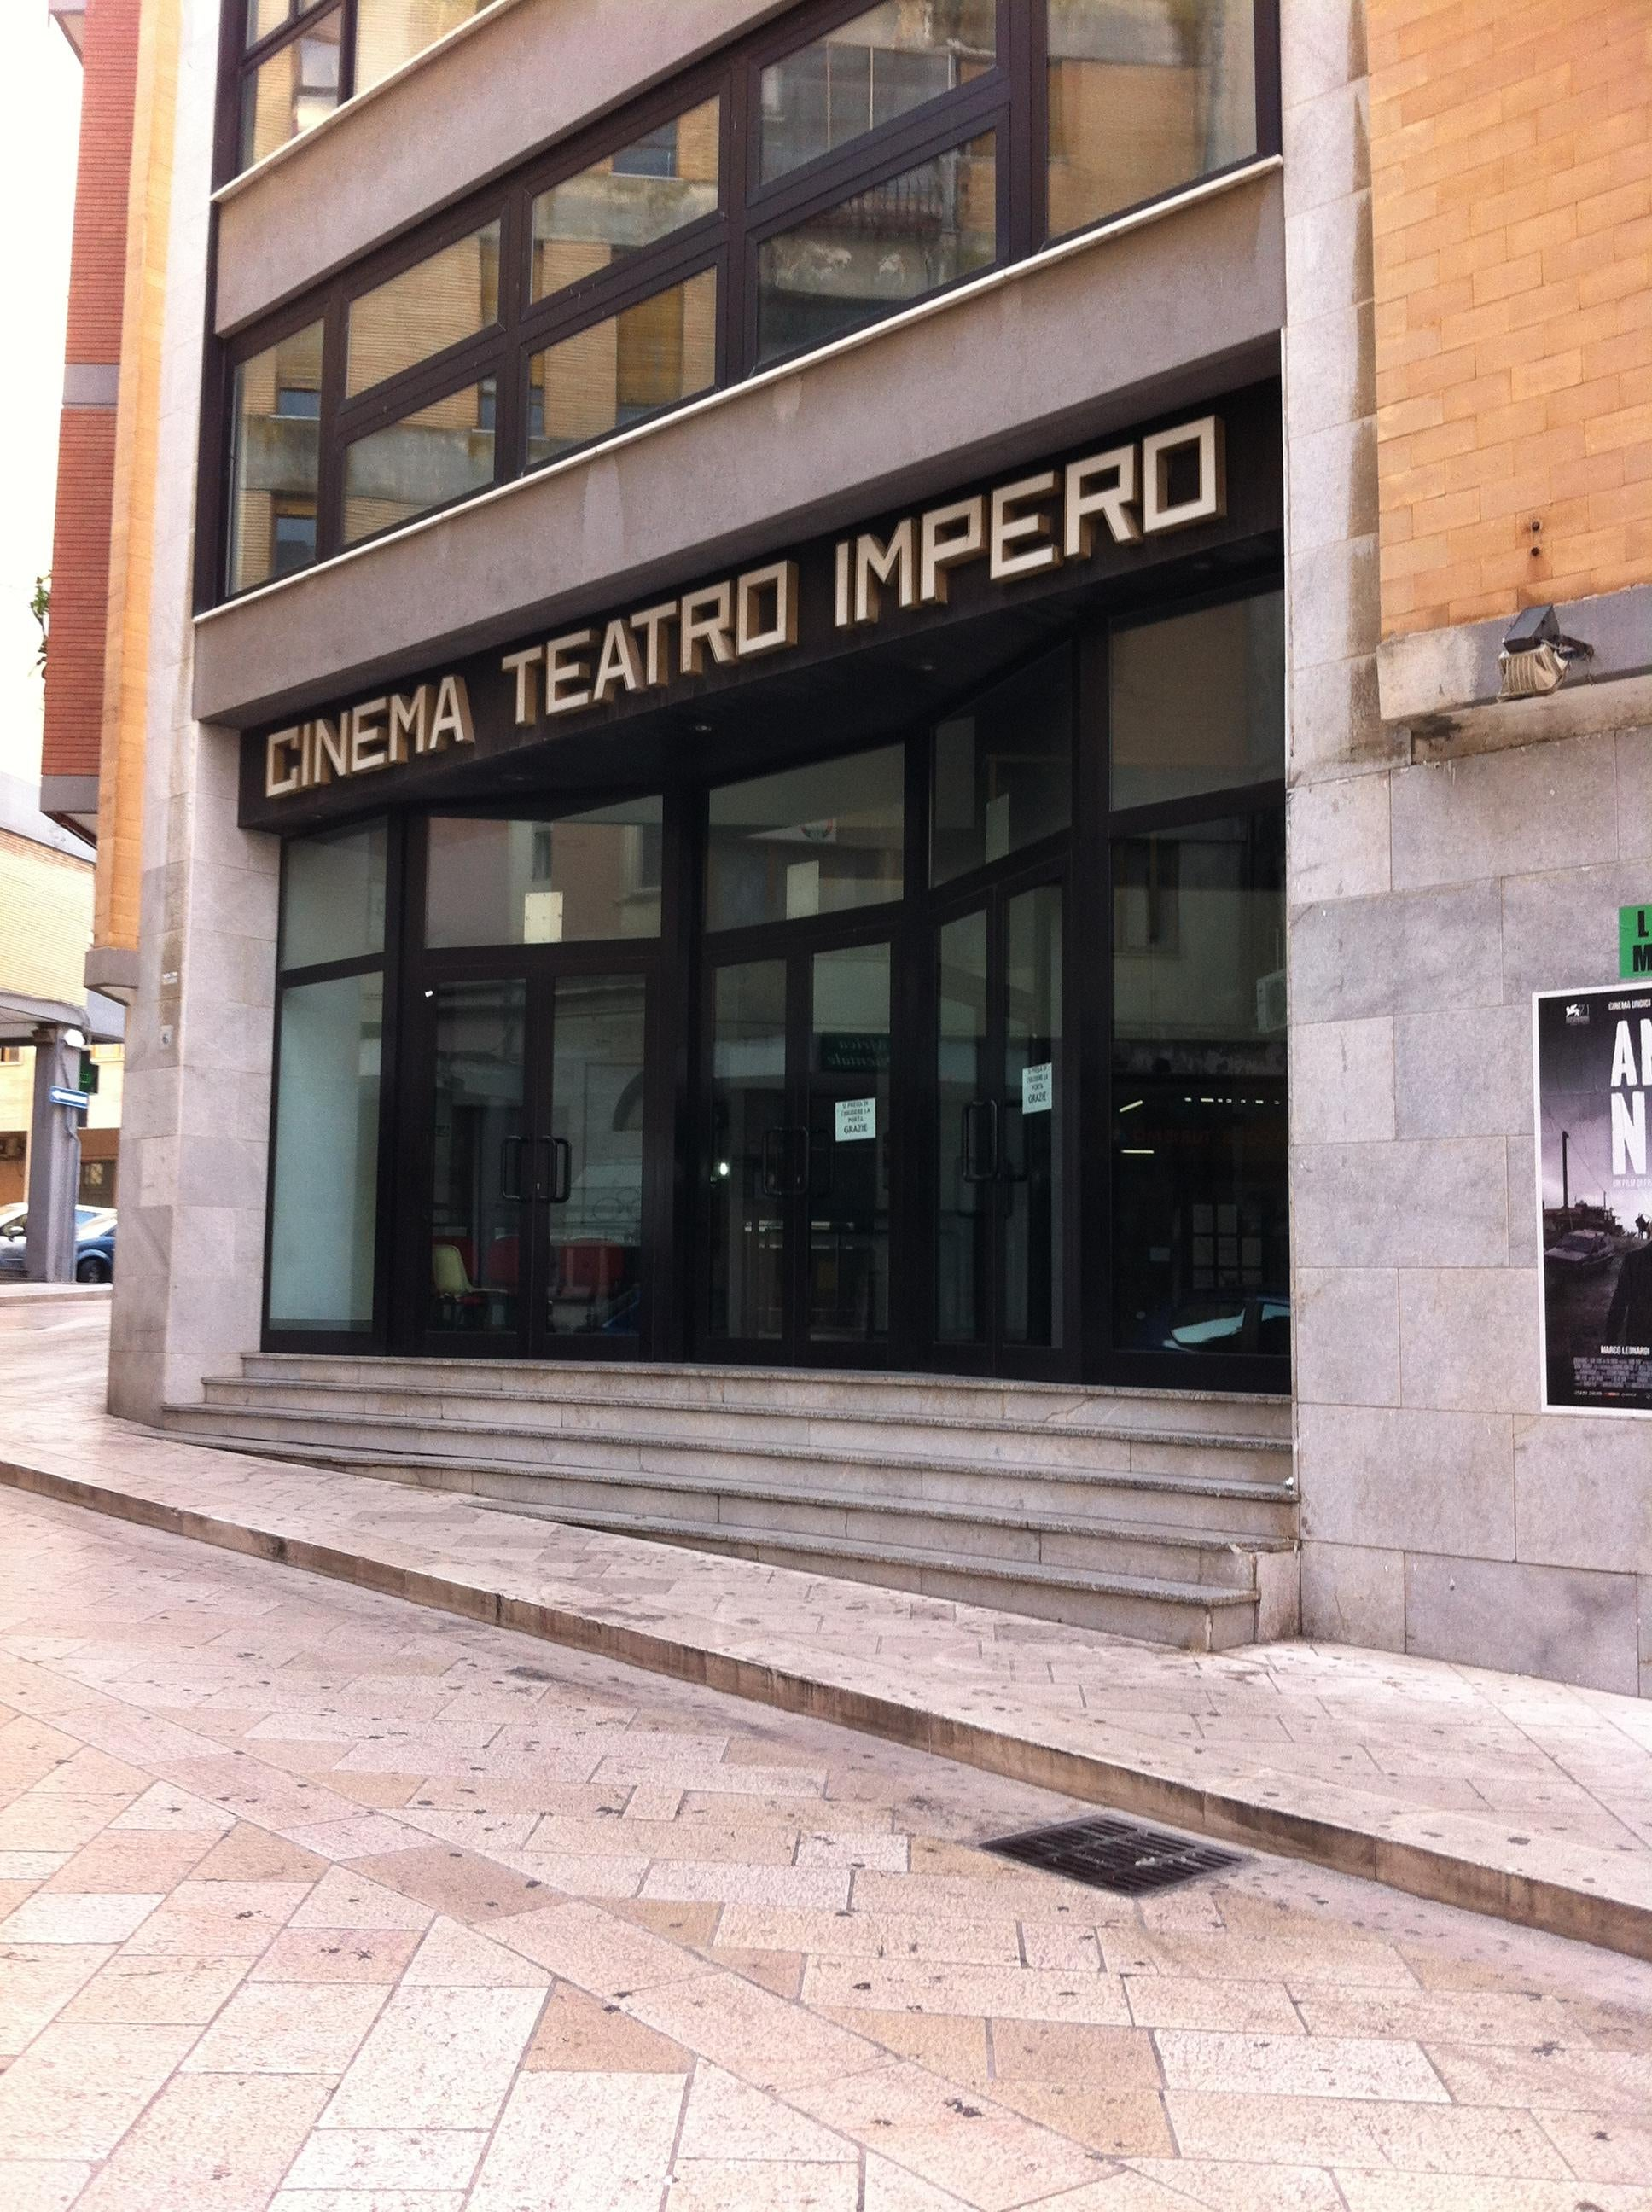 Cinema Teatro Impero